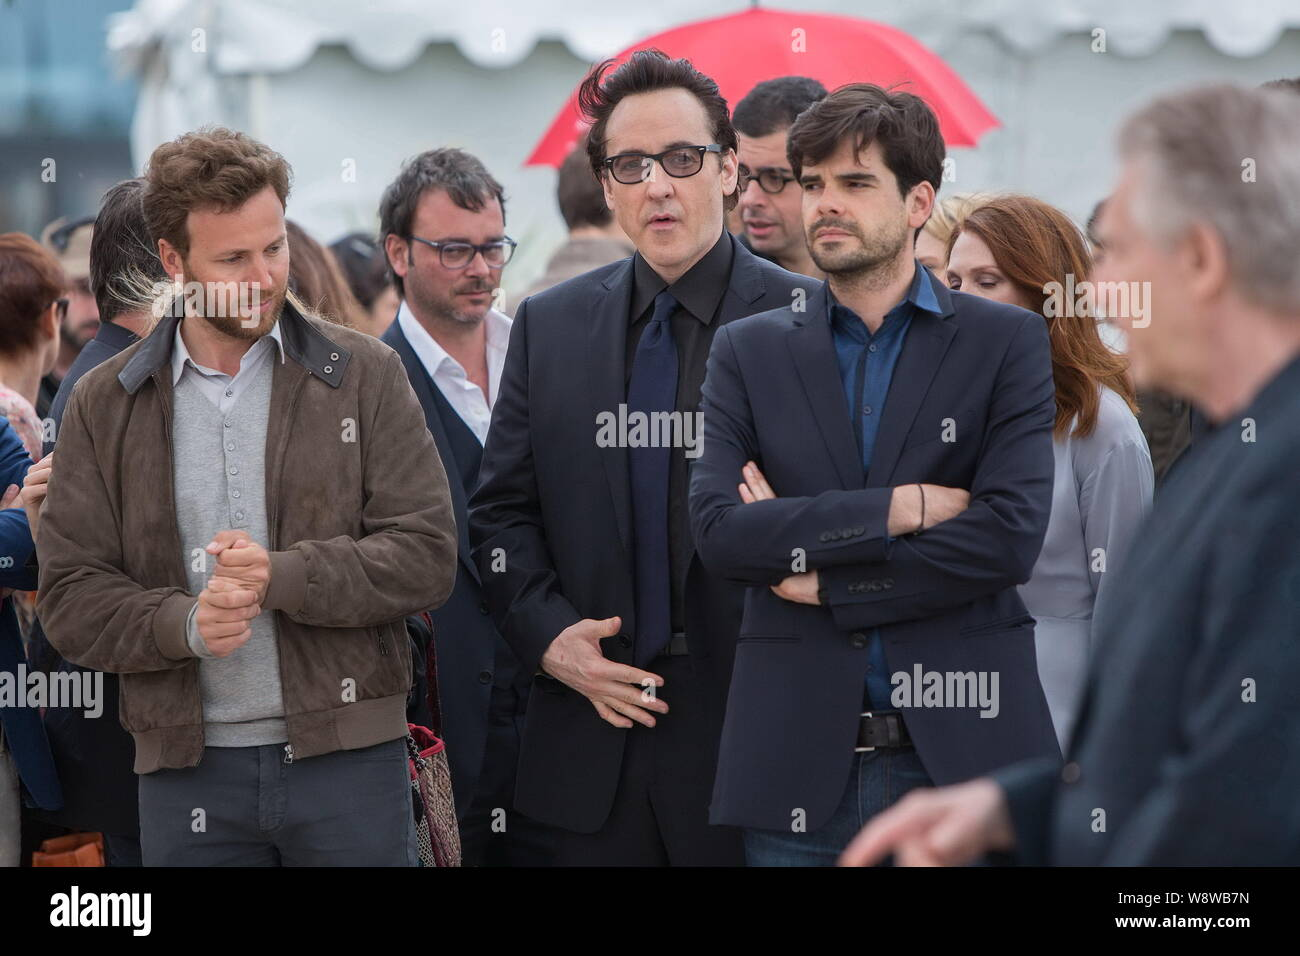 American actor John Cusack, center, poses at a photocall for ... on trip map, space map, war map, princess map, fun map, statue map, portrait map, adventure map, musical map, animation map, 9gag map, action map, media map, water map, dual screen map, game map, novel map, right to die map, seaworld gold coast map, business map,